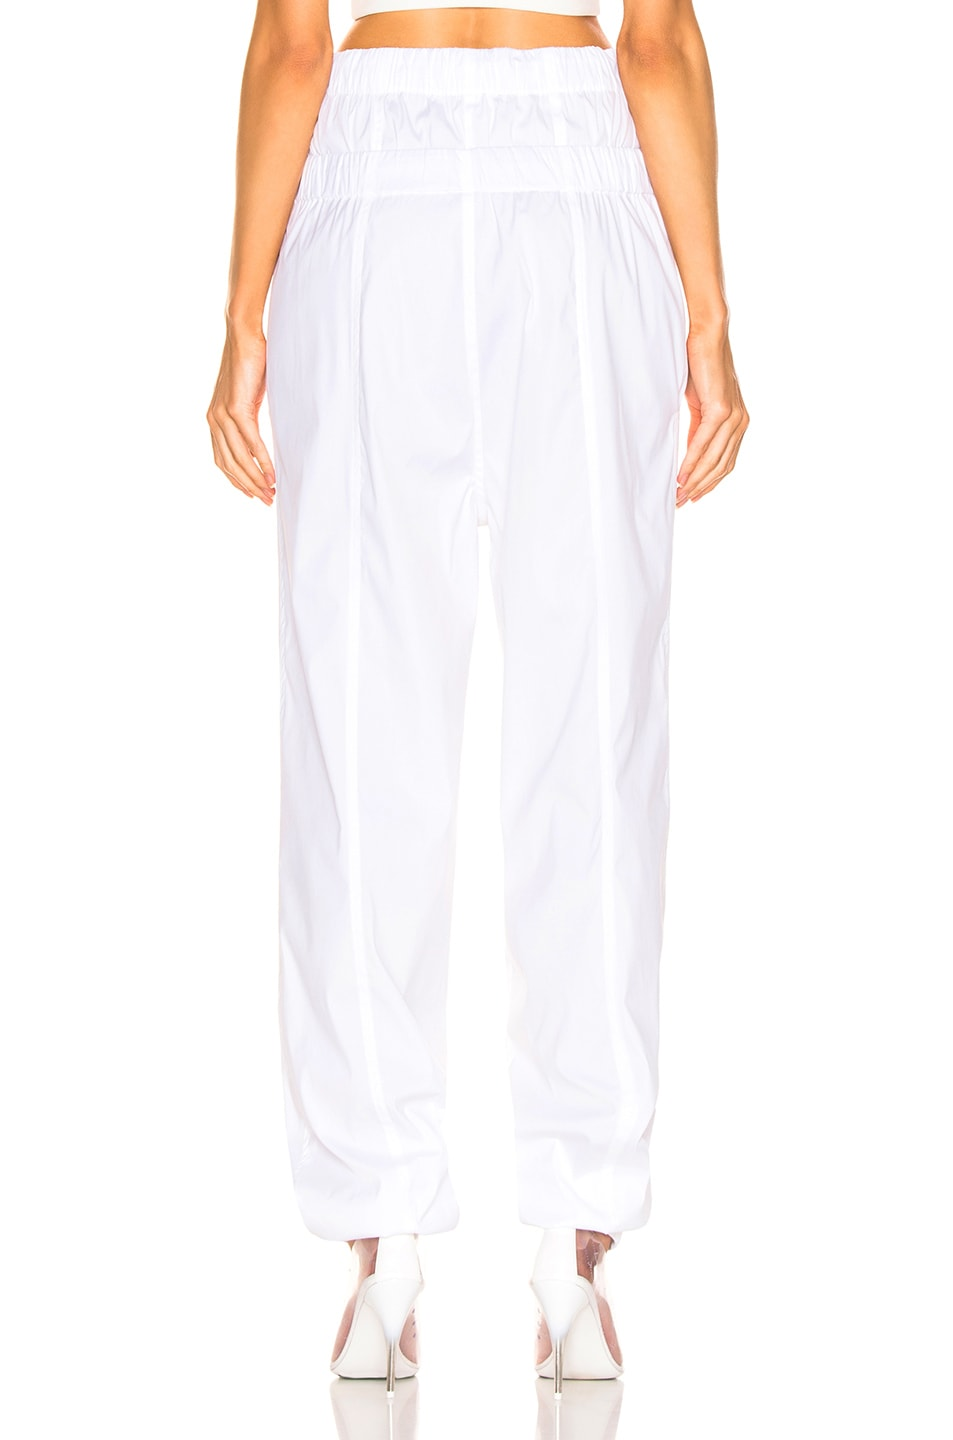 Image 3 of TRE by Natalie Ratabesi Flo Track Pant in White